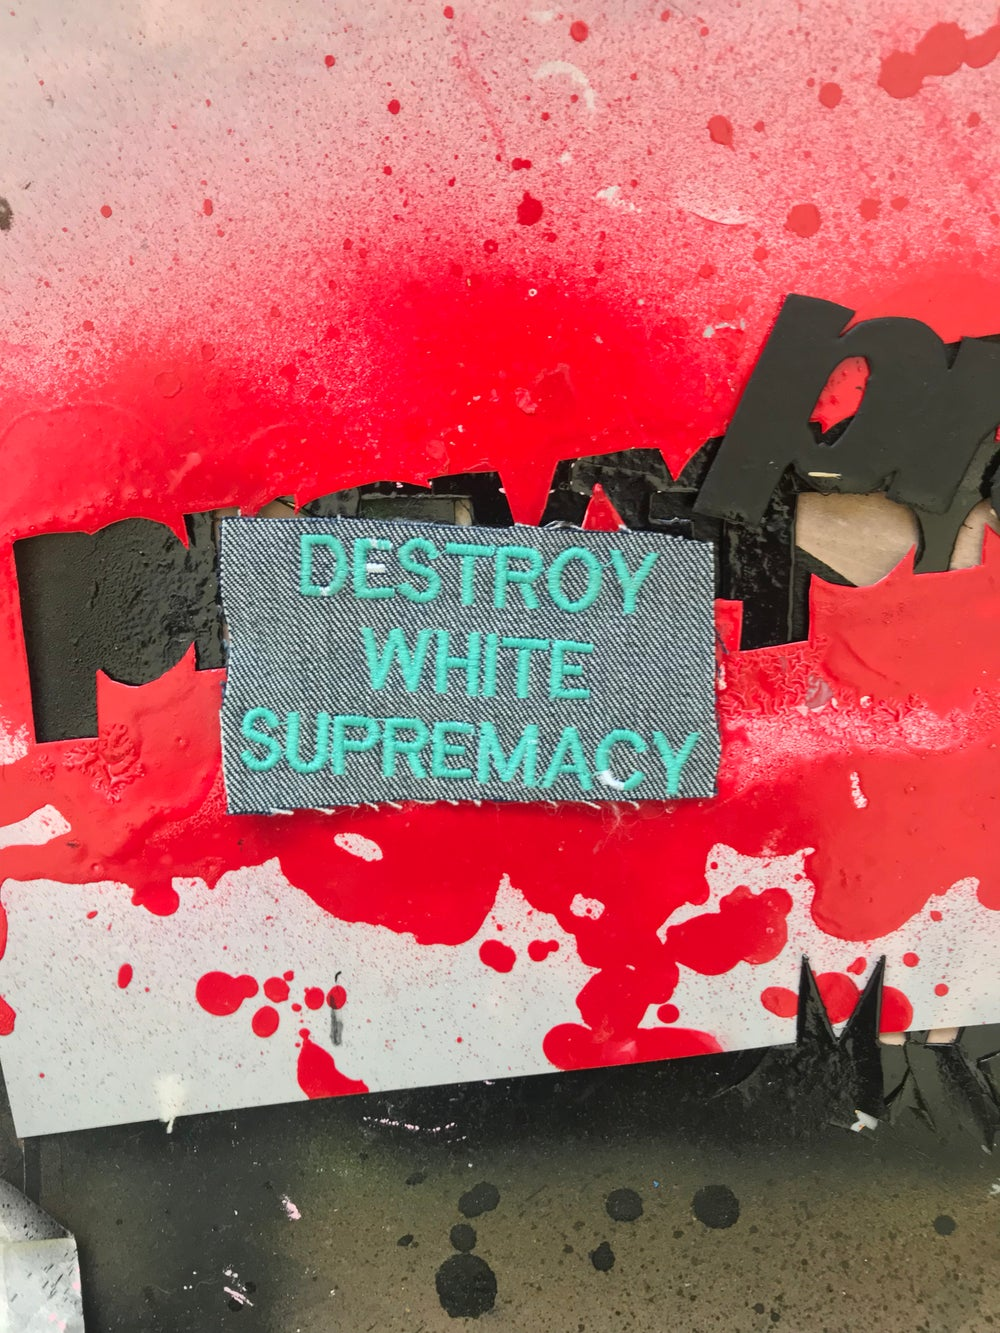 Destroy White Supremacy Patches